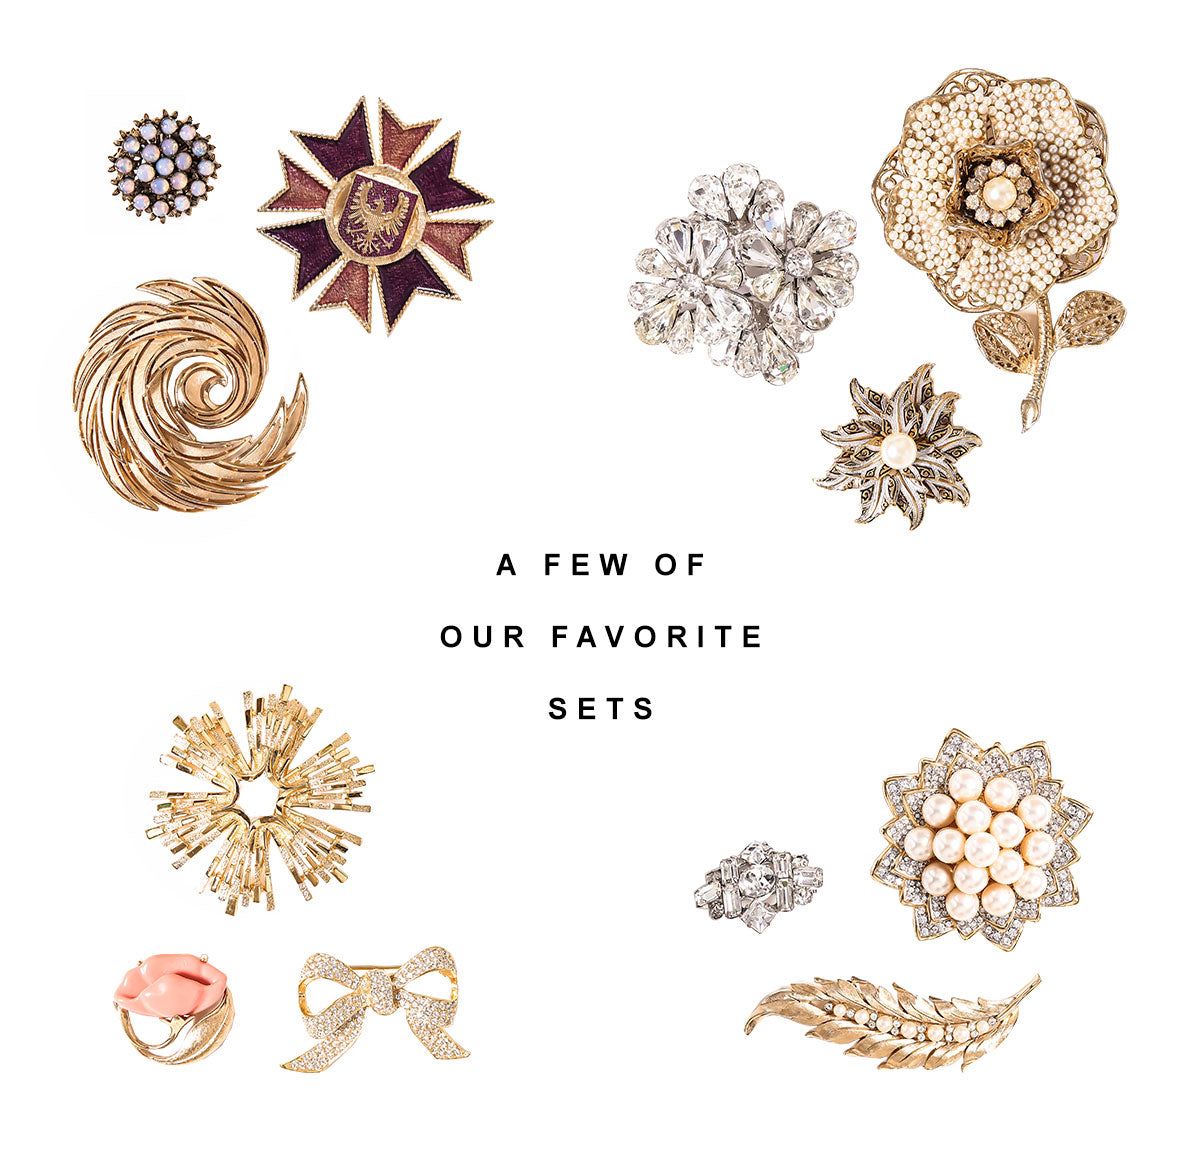 A few of our favorite brooch sets